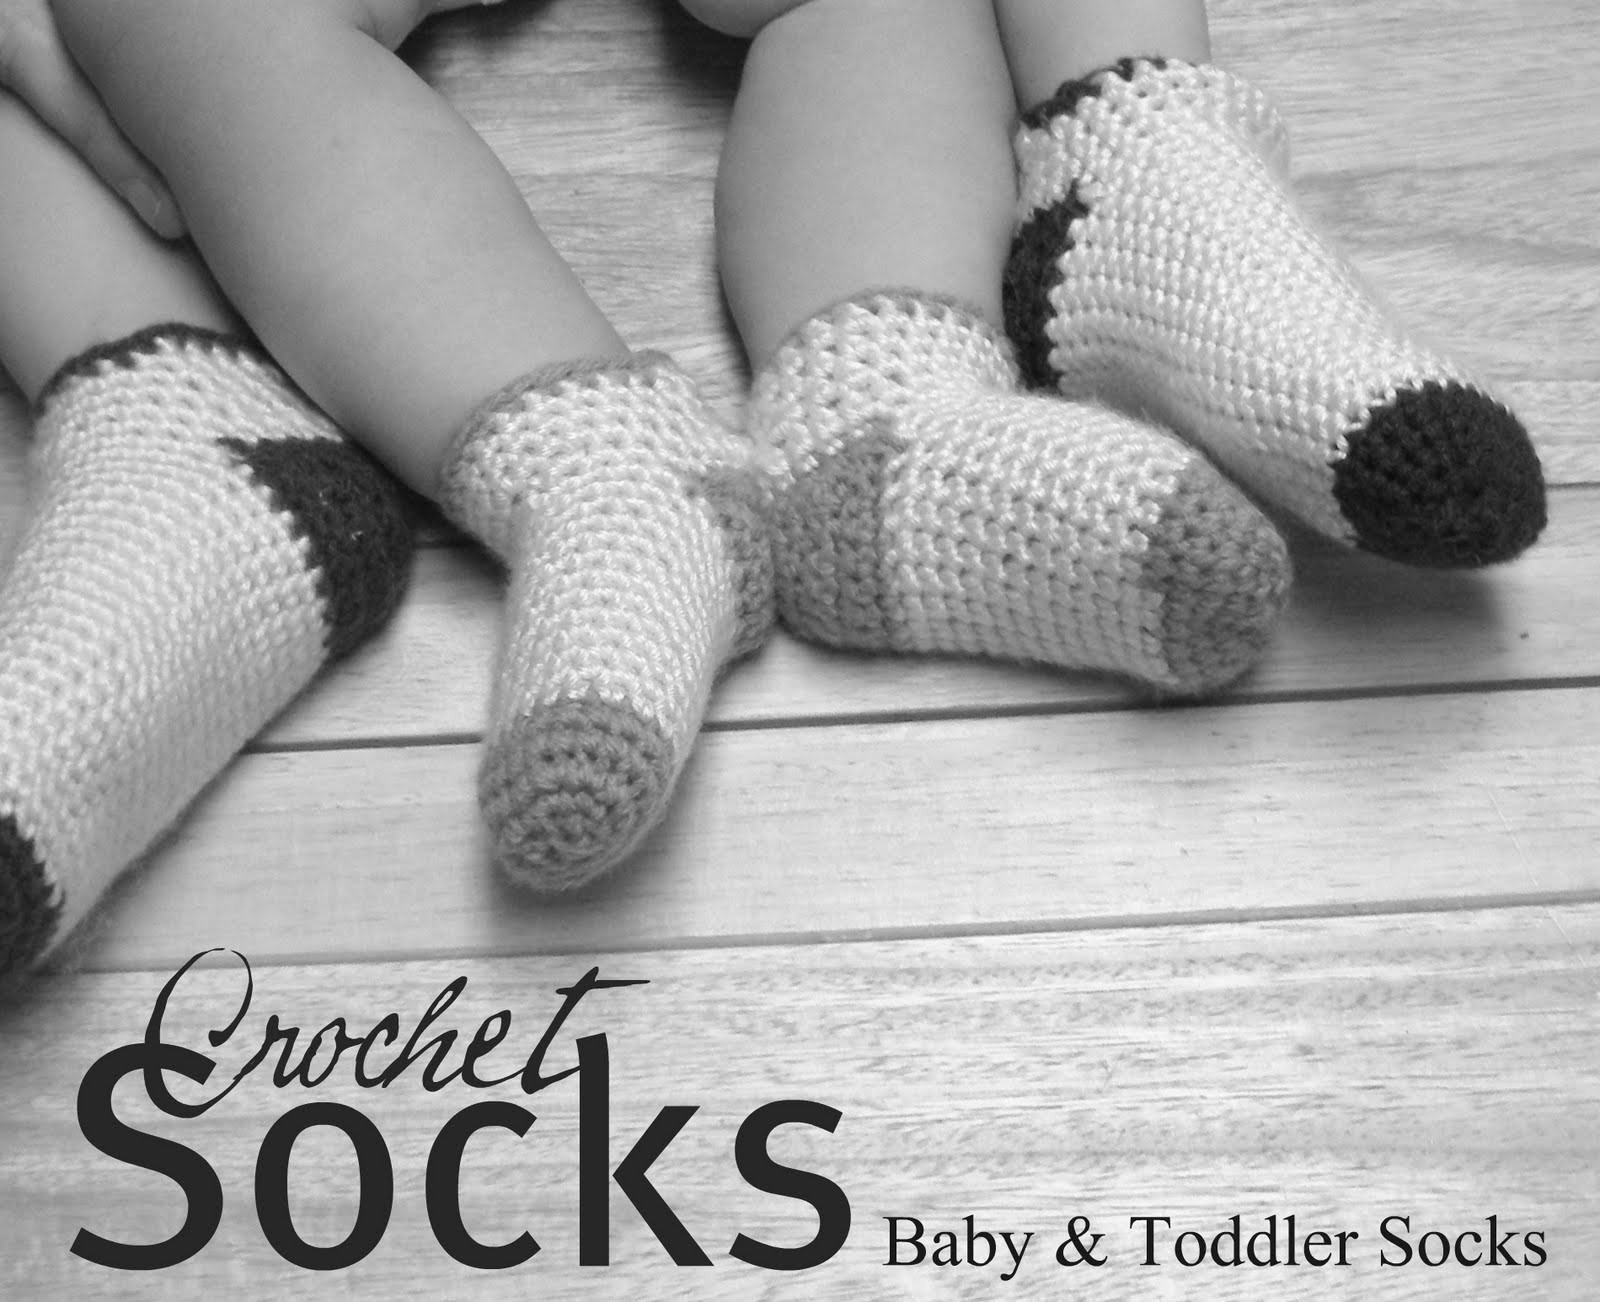 Unique Baby toddler Crochet socks Mamacheemamachee Crochet Baby socks Of Beautiful Crochet Baby Booties Patterns for Sweet Little Feet Crochet Baby socks